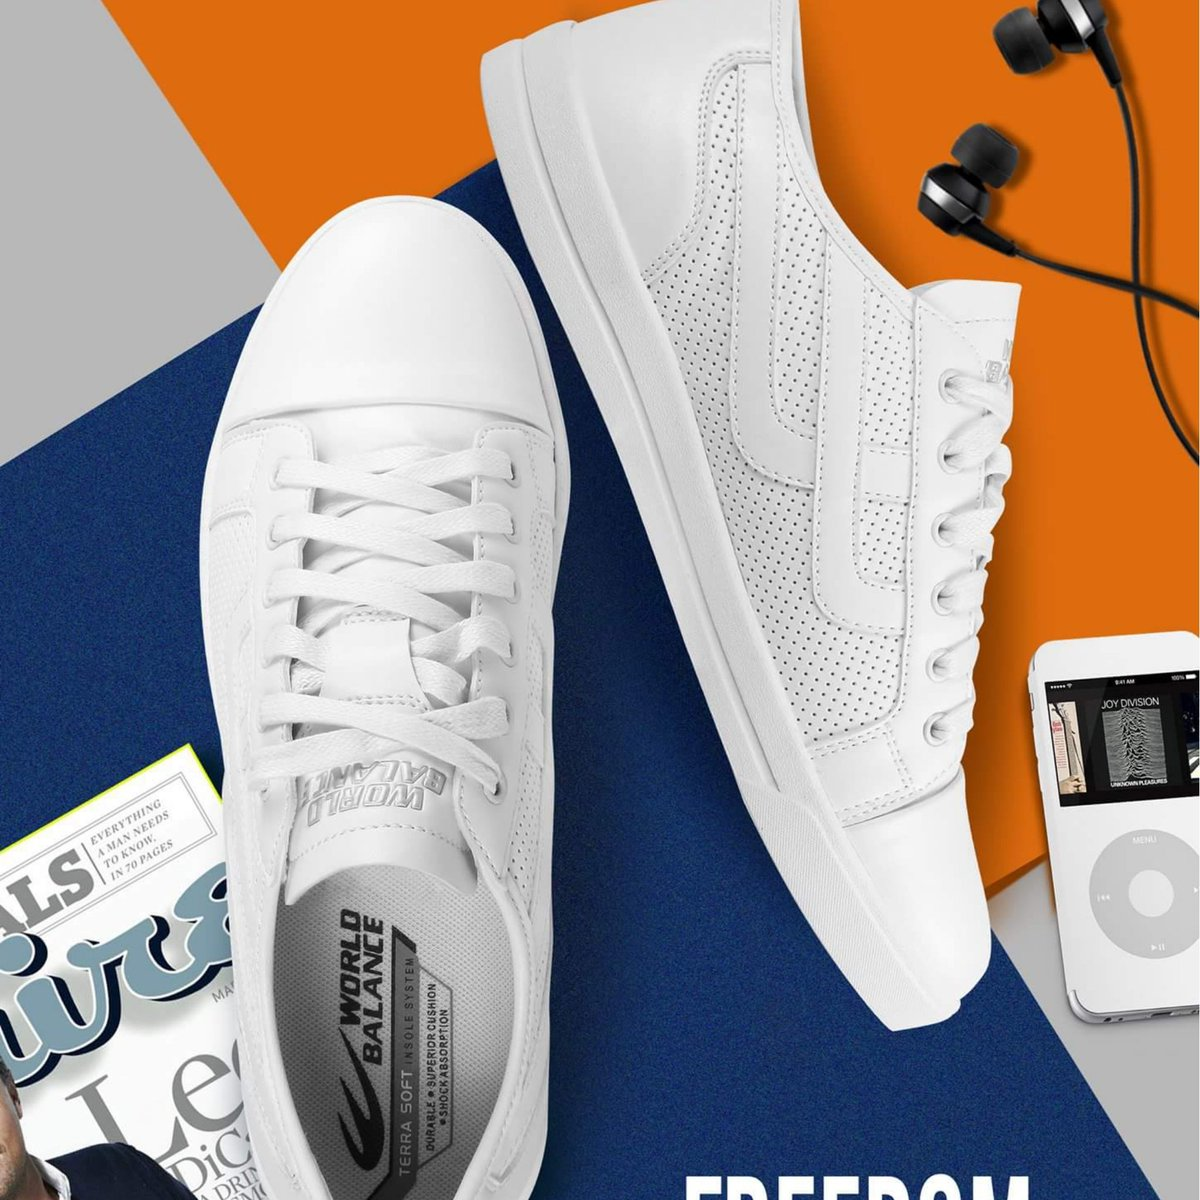 Stay preppy. The FREEDOM LUX